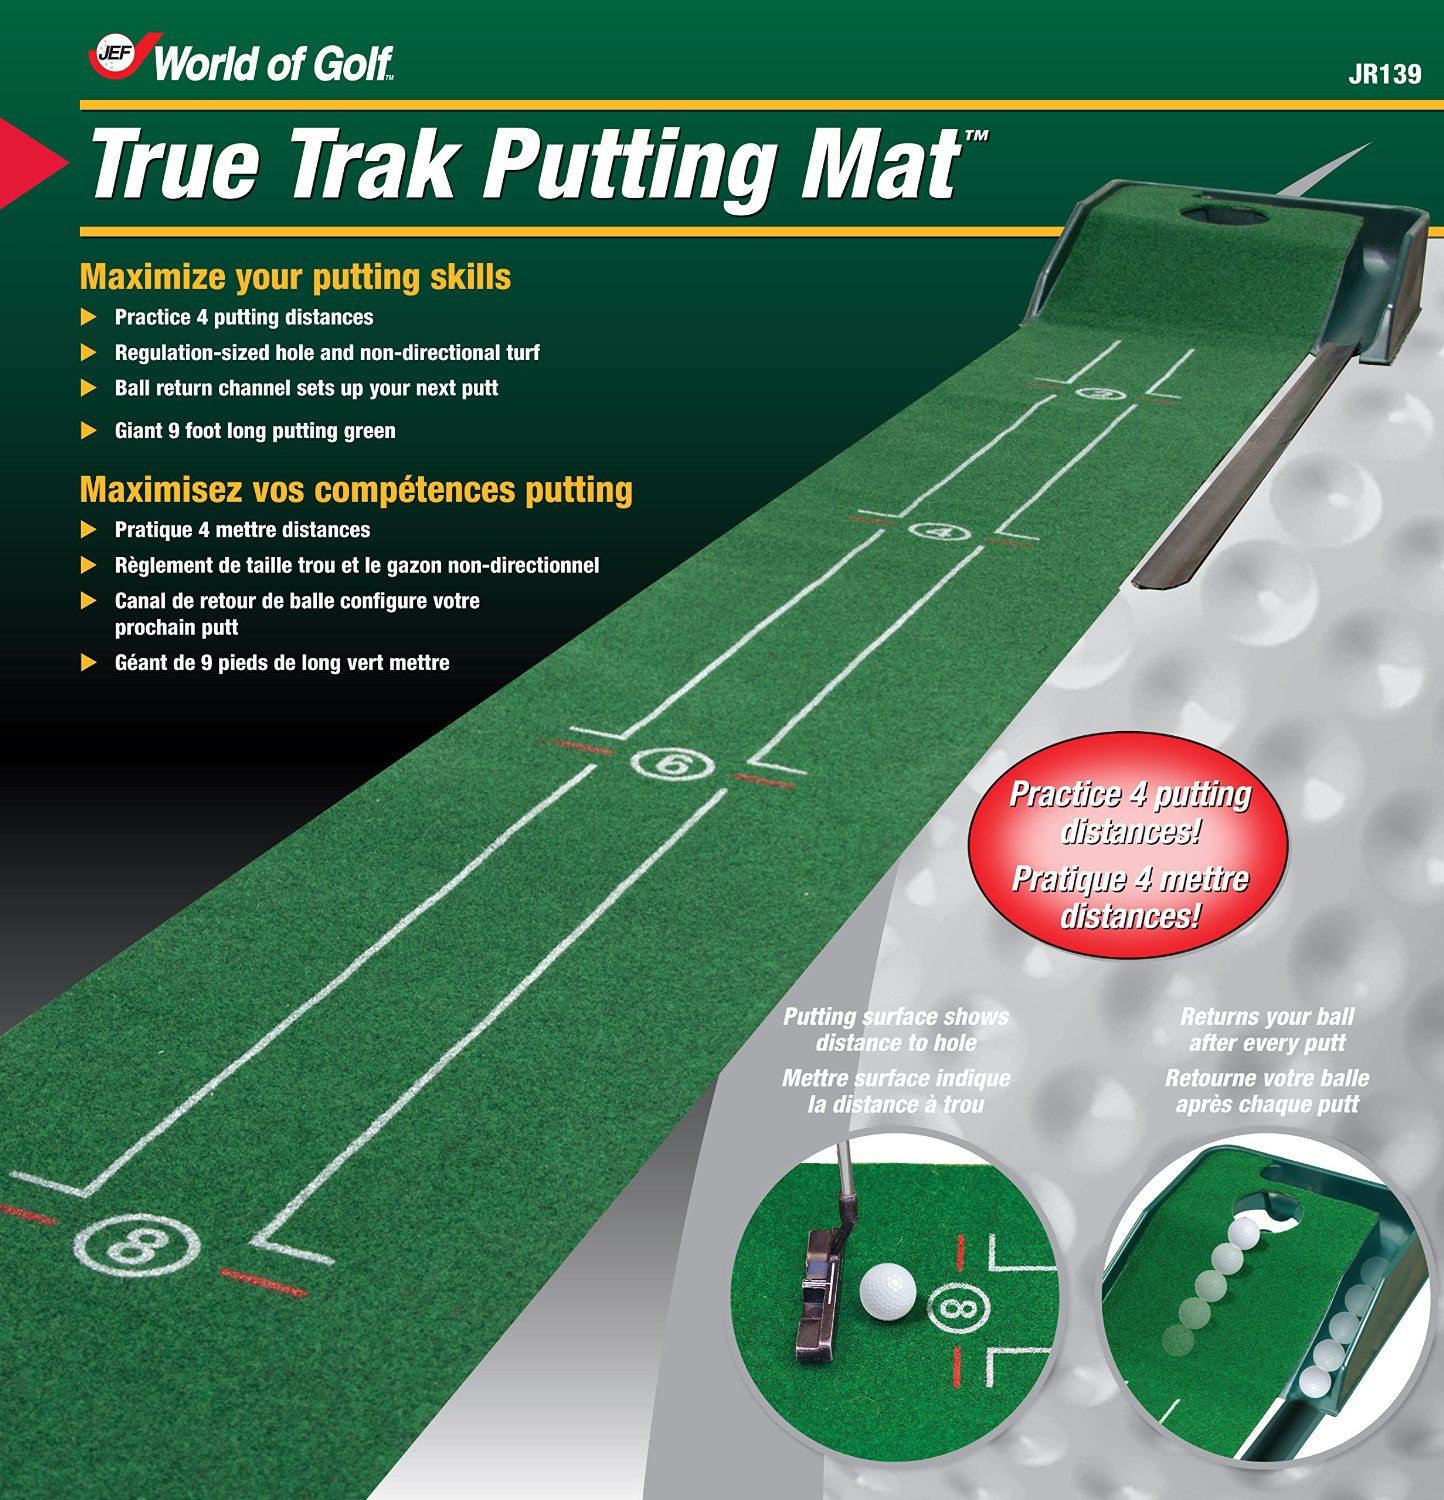 Club Champ Tru-Trak Golf Putting Mat Systems